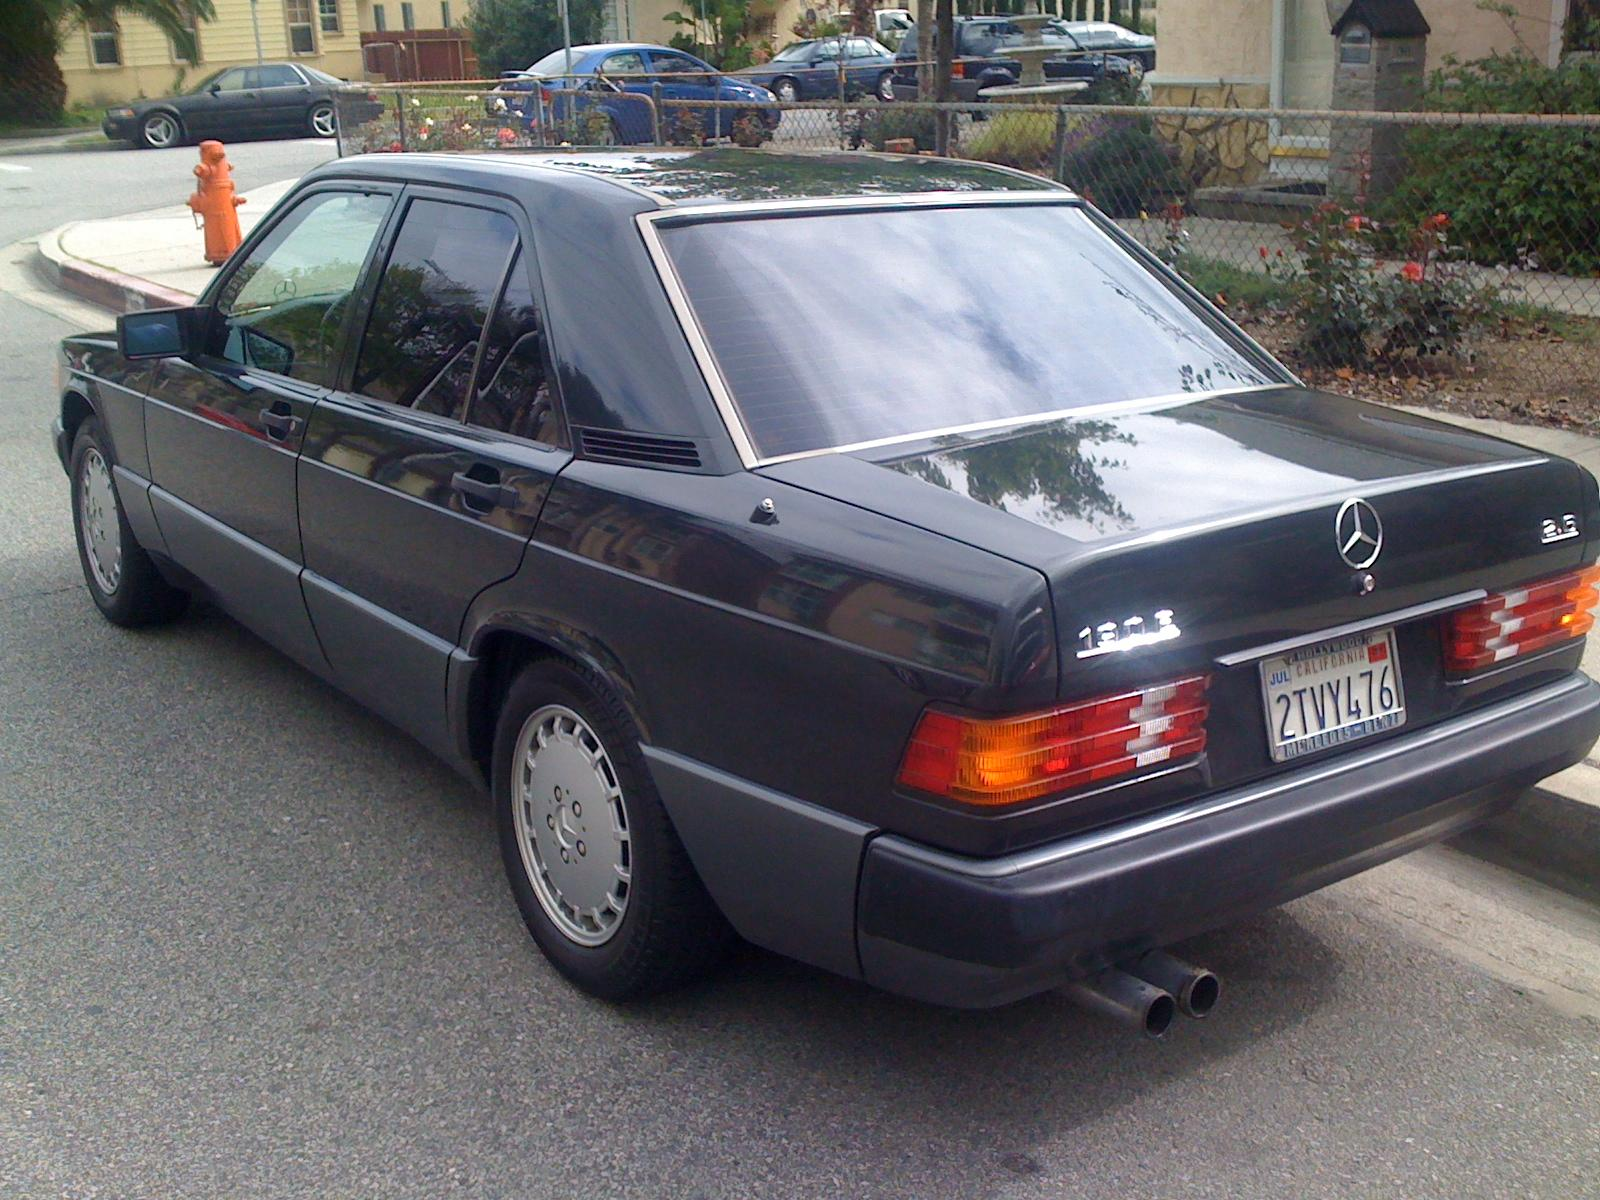 sx 1995 mercedes benz 190e specs photos modification info at cardomain. Black Bedroom Furniture Sets. Home Design Ideas